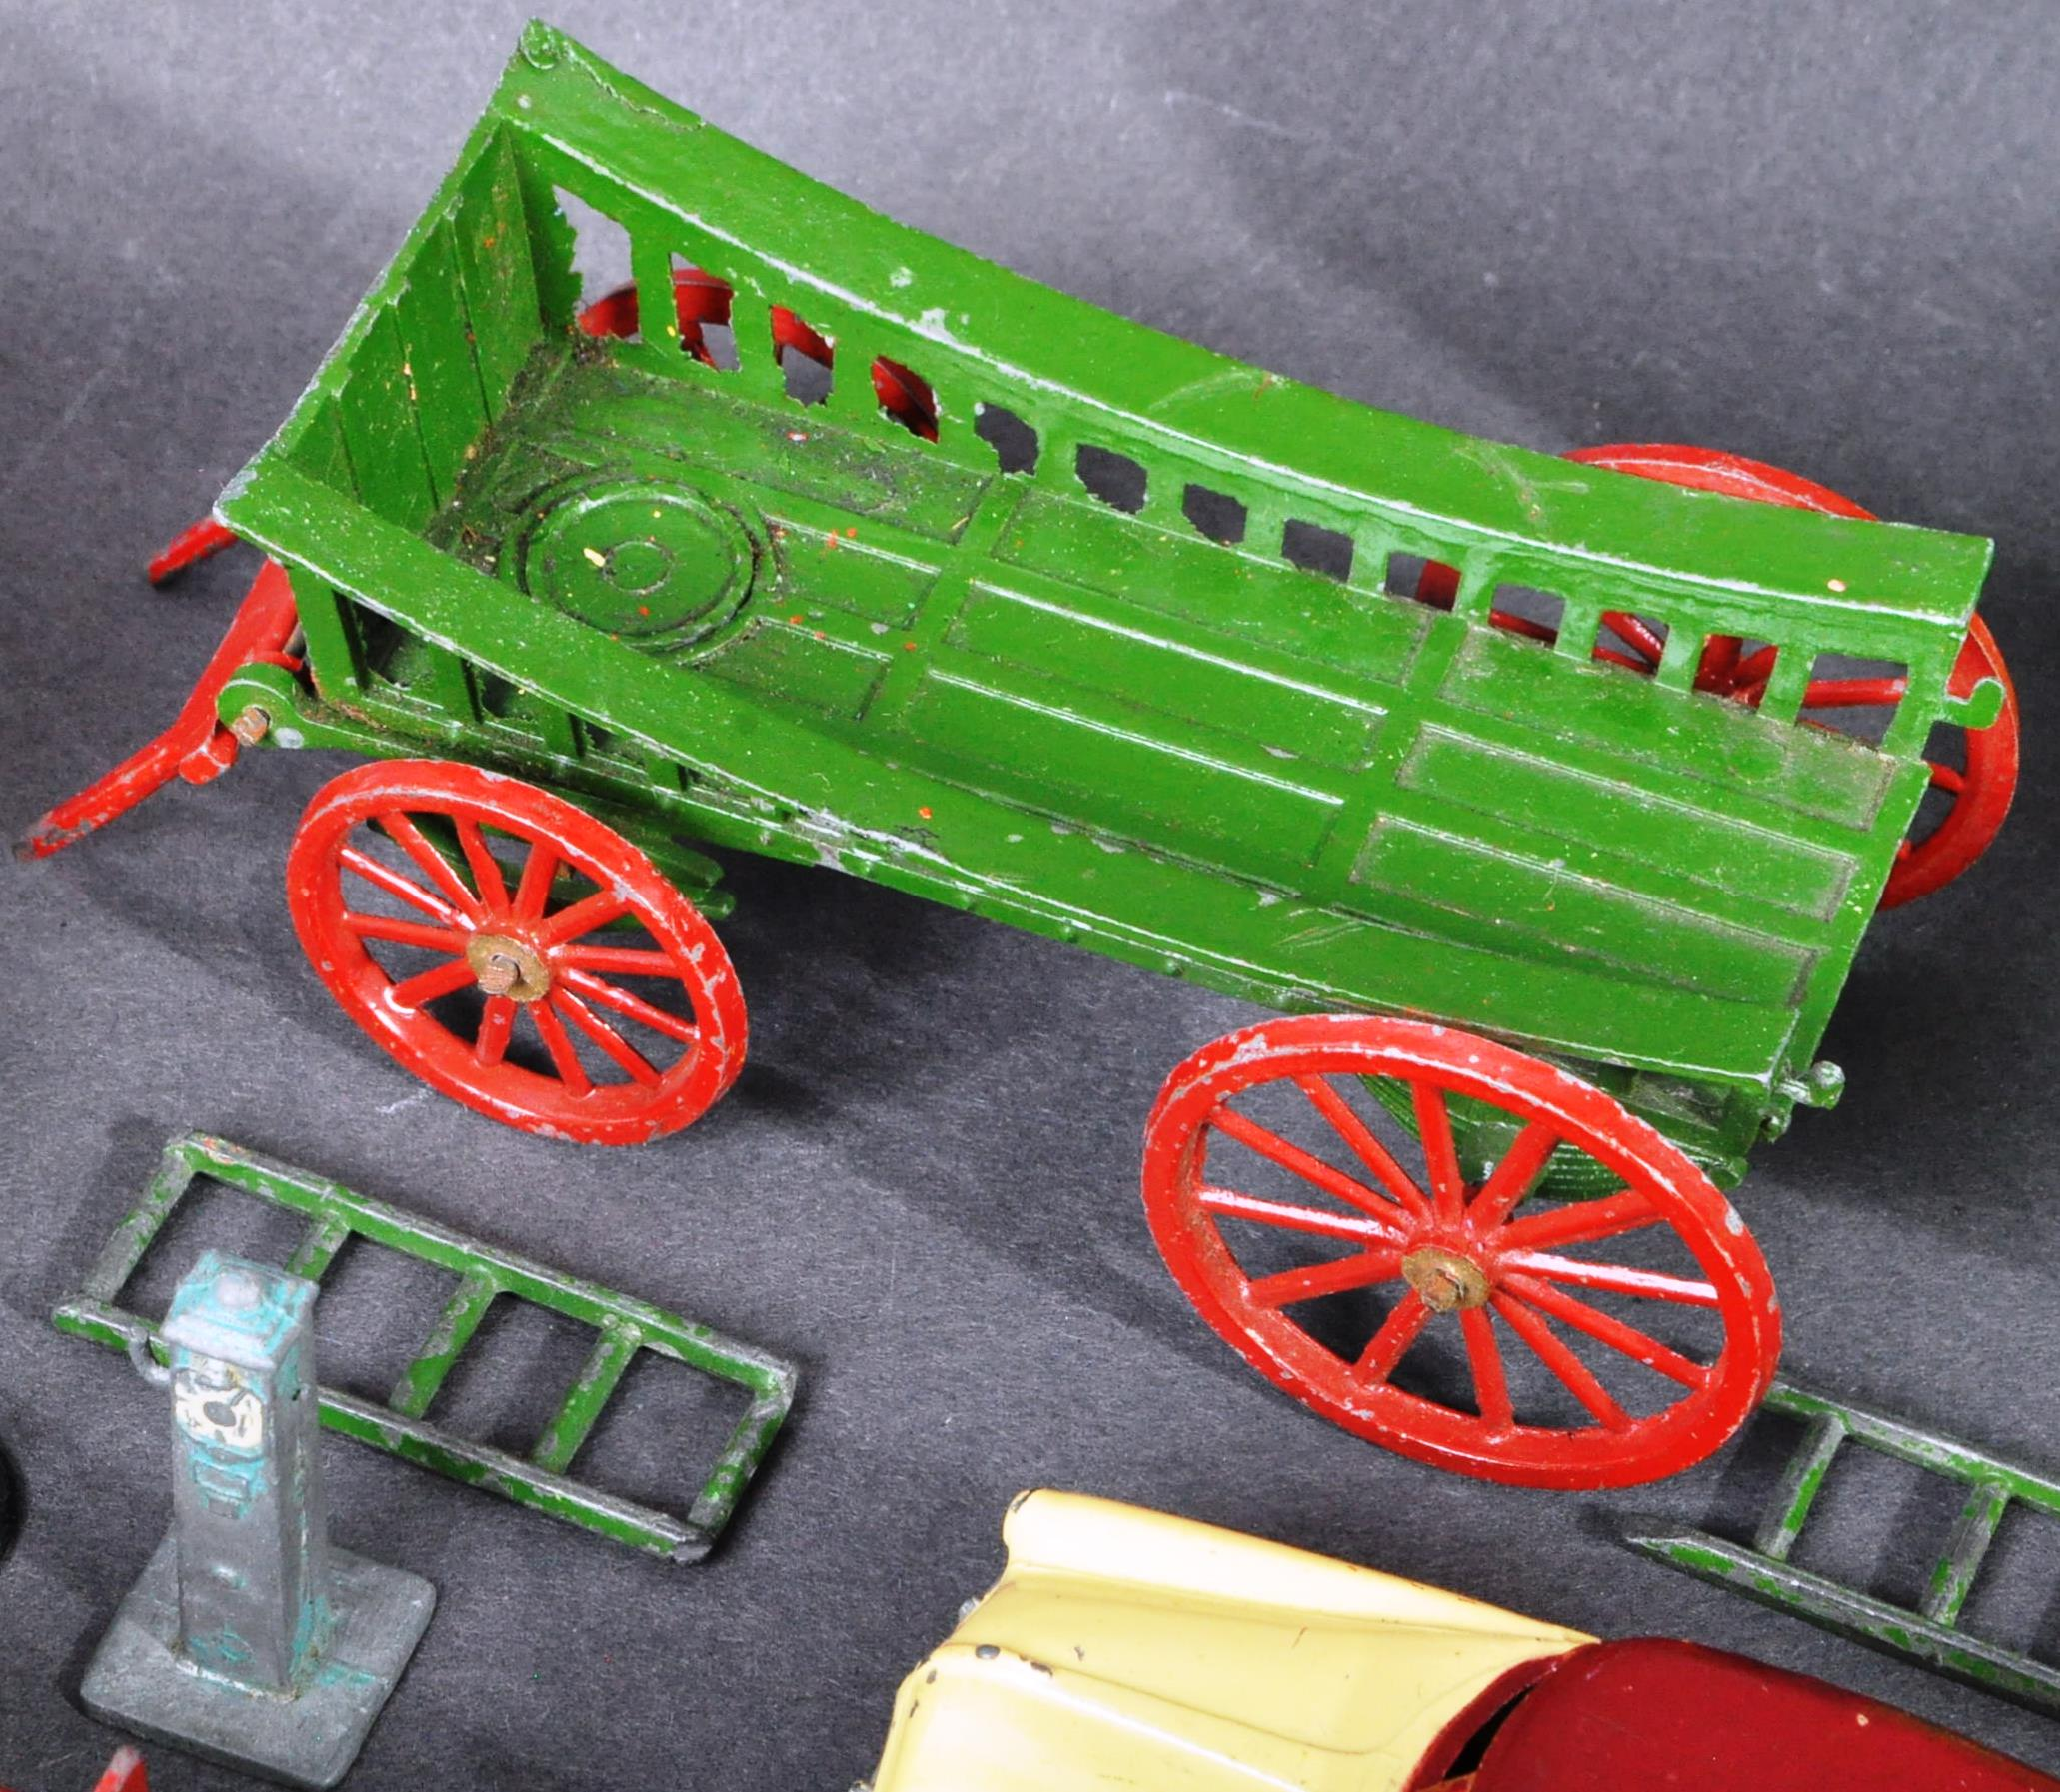 DIECAST - COLLECTION OF ASSORTED ANTIQUE / VINTAGE DIECAST - Image 4 of 9